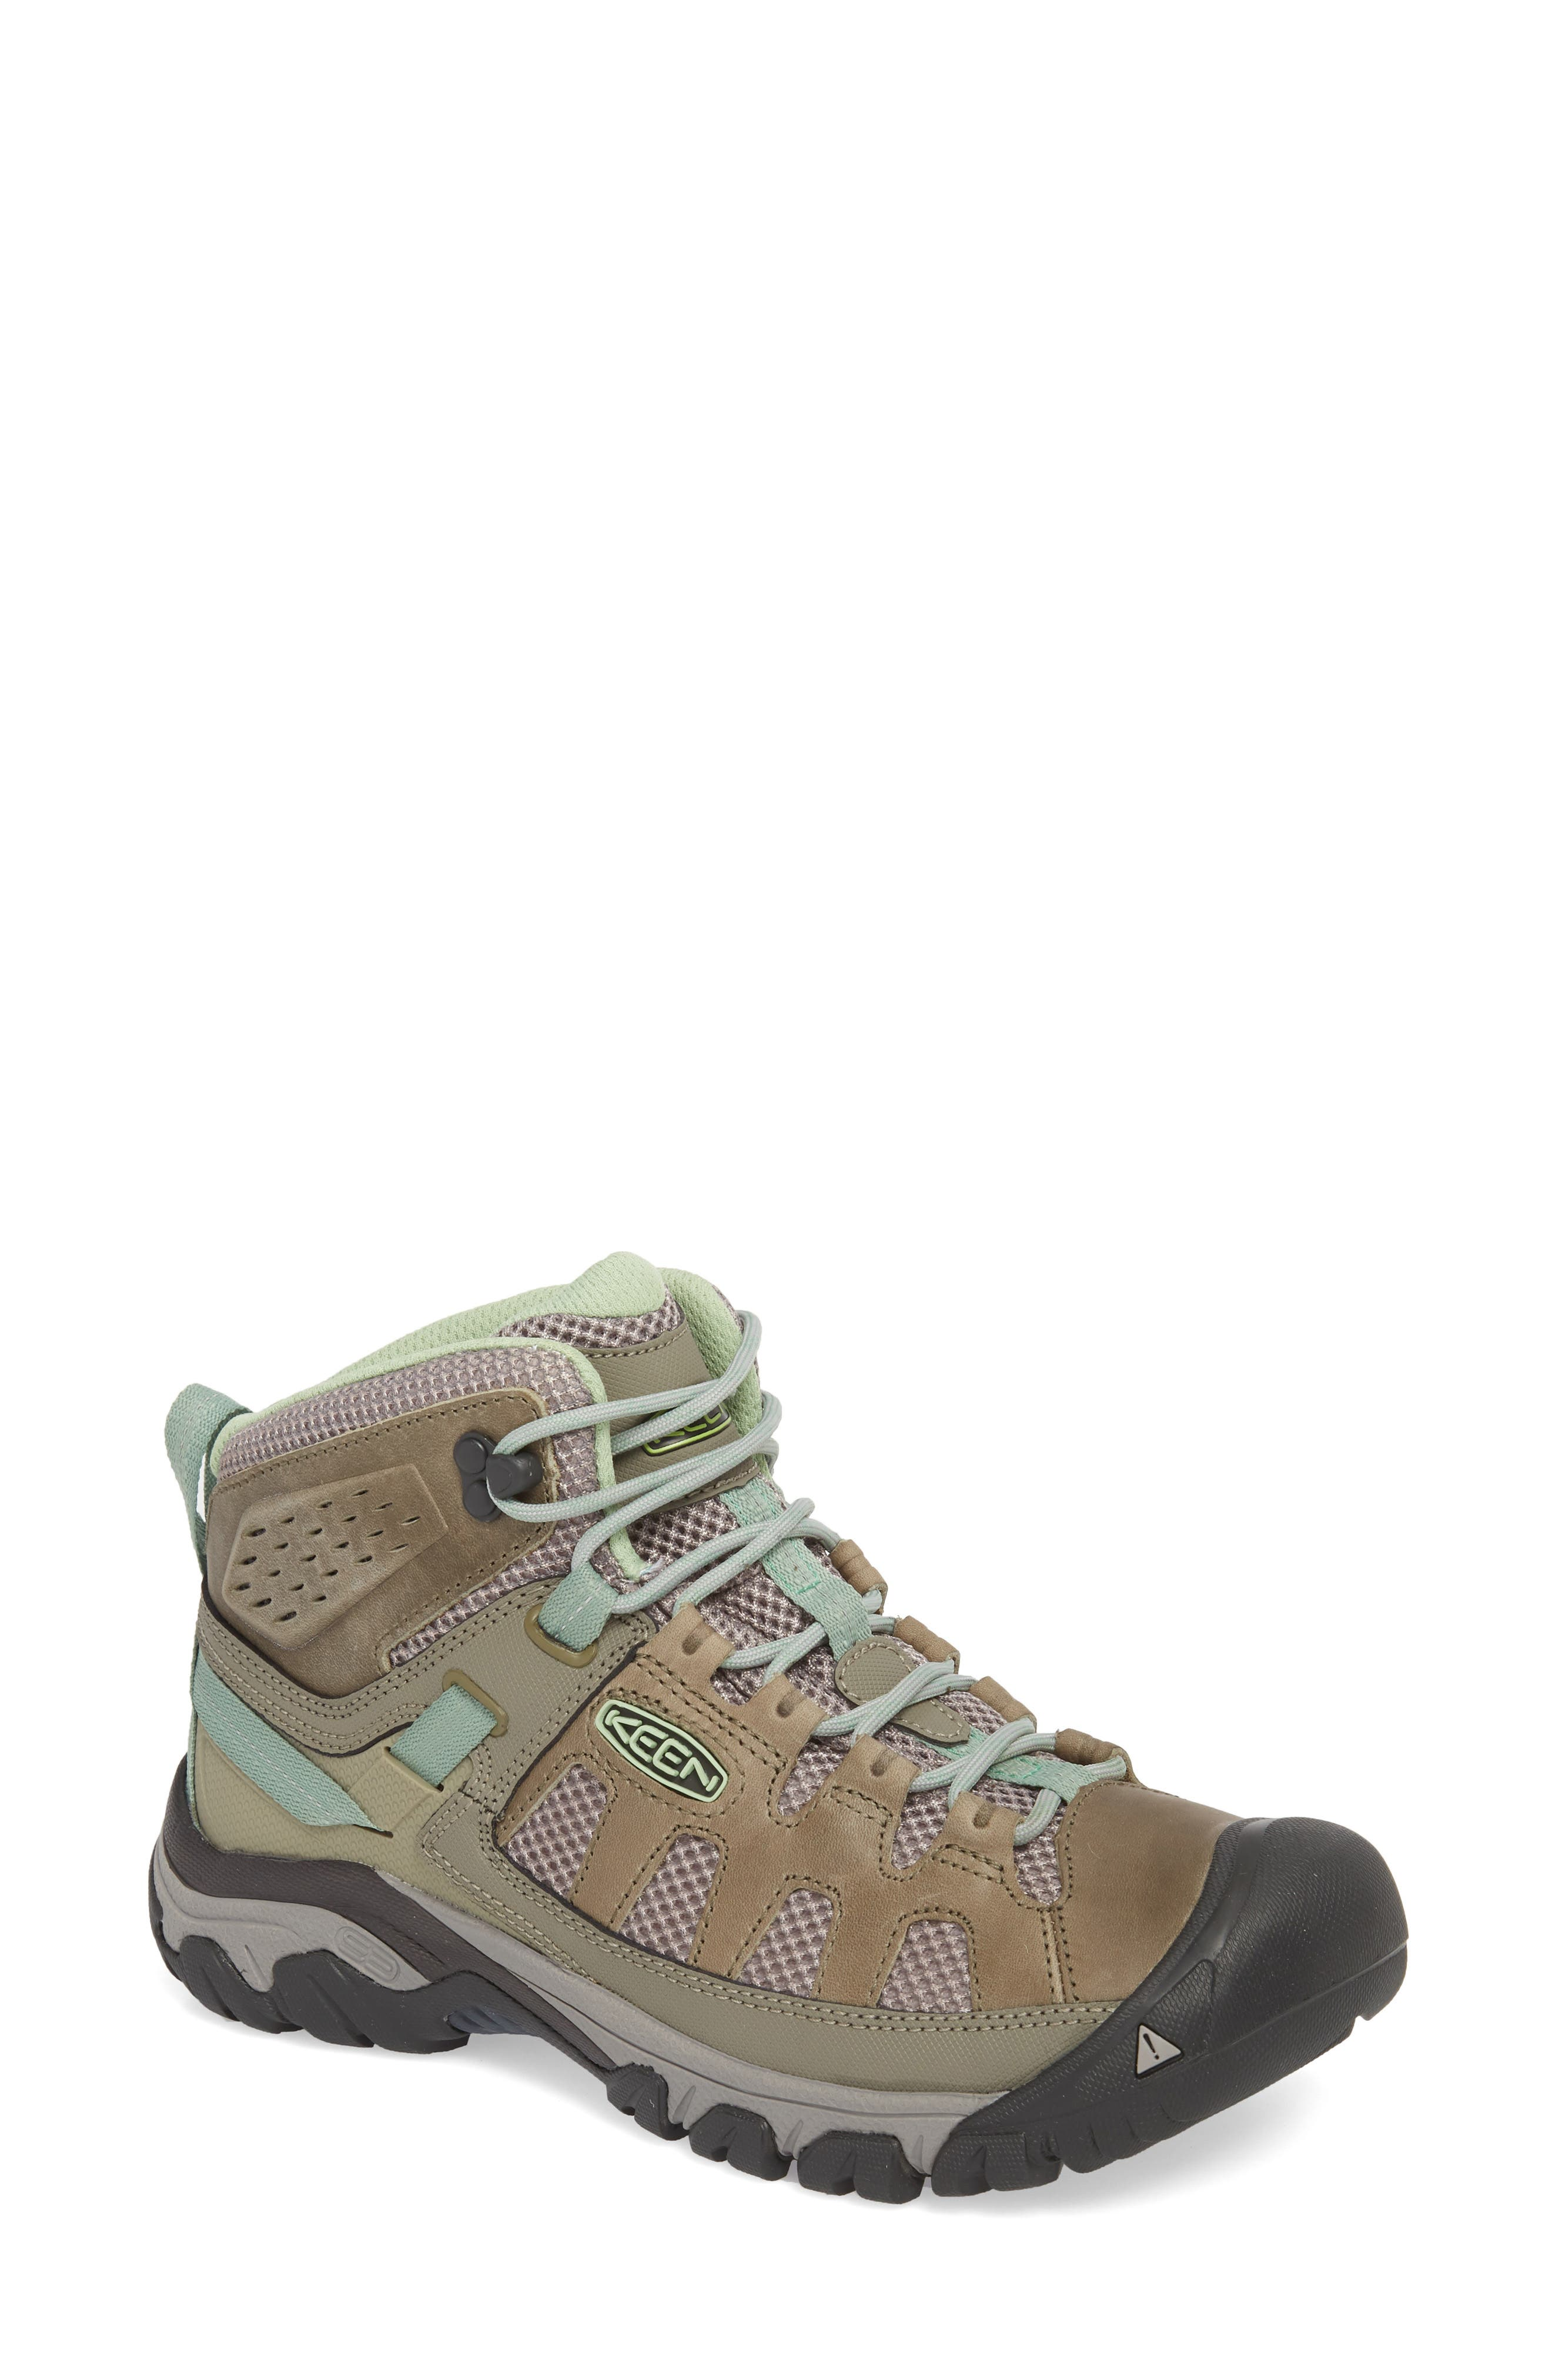 Targhee Vent Mid Hiking Shoe,                             Main thumbnail 1, color,                             Fumo/ Quiet Green Leather